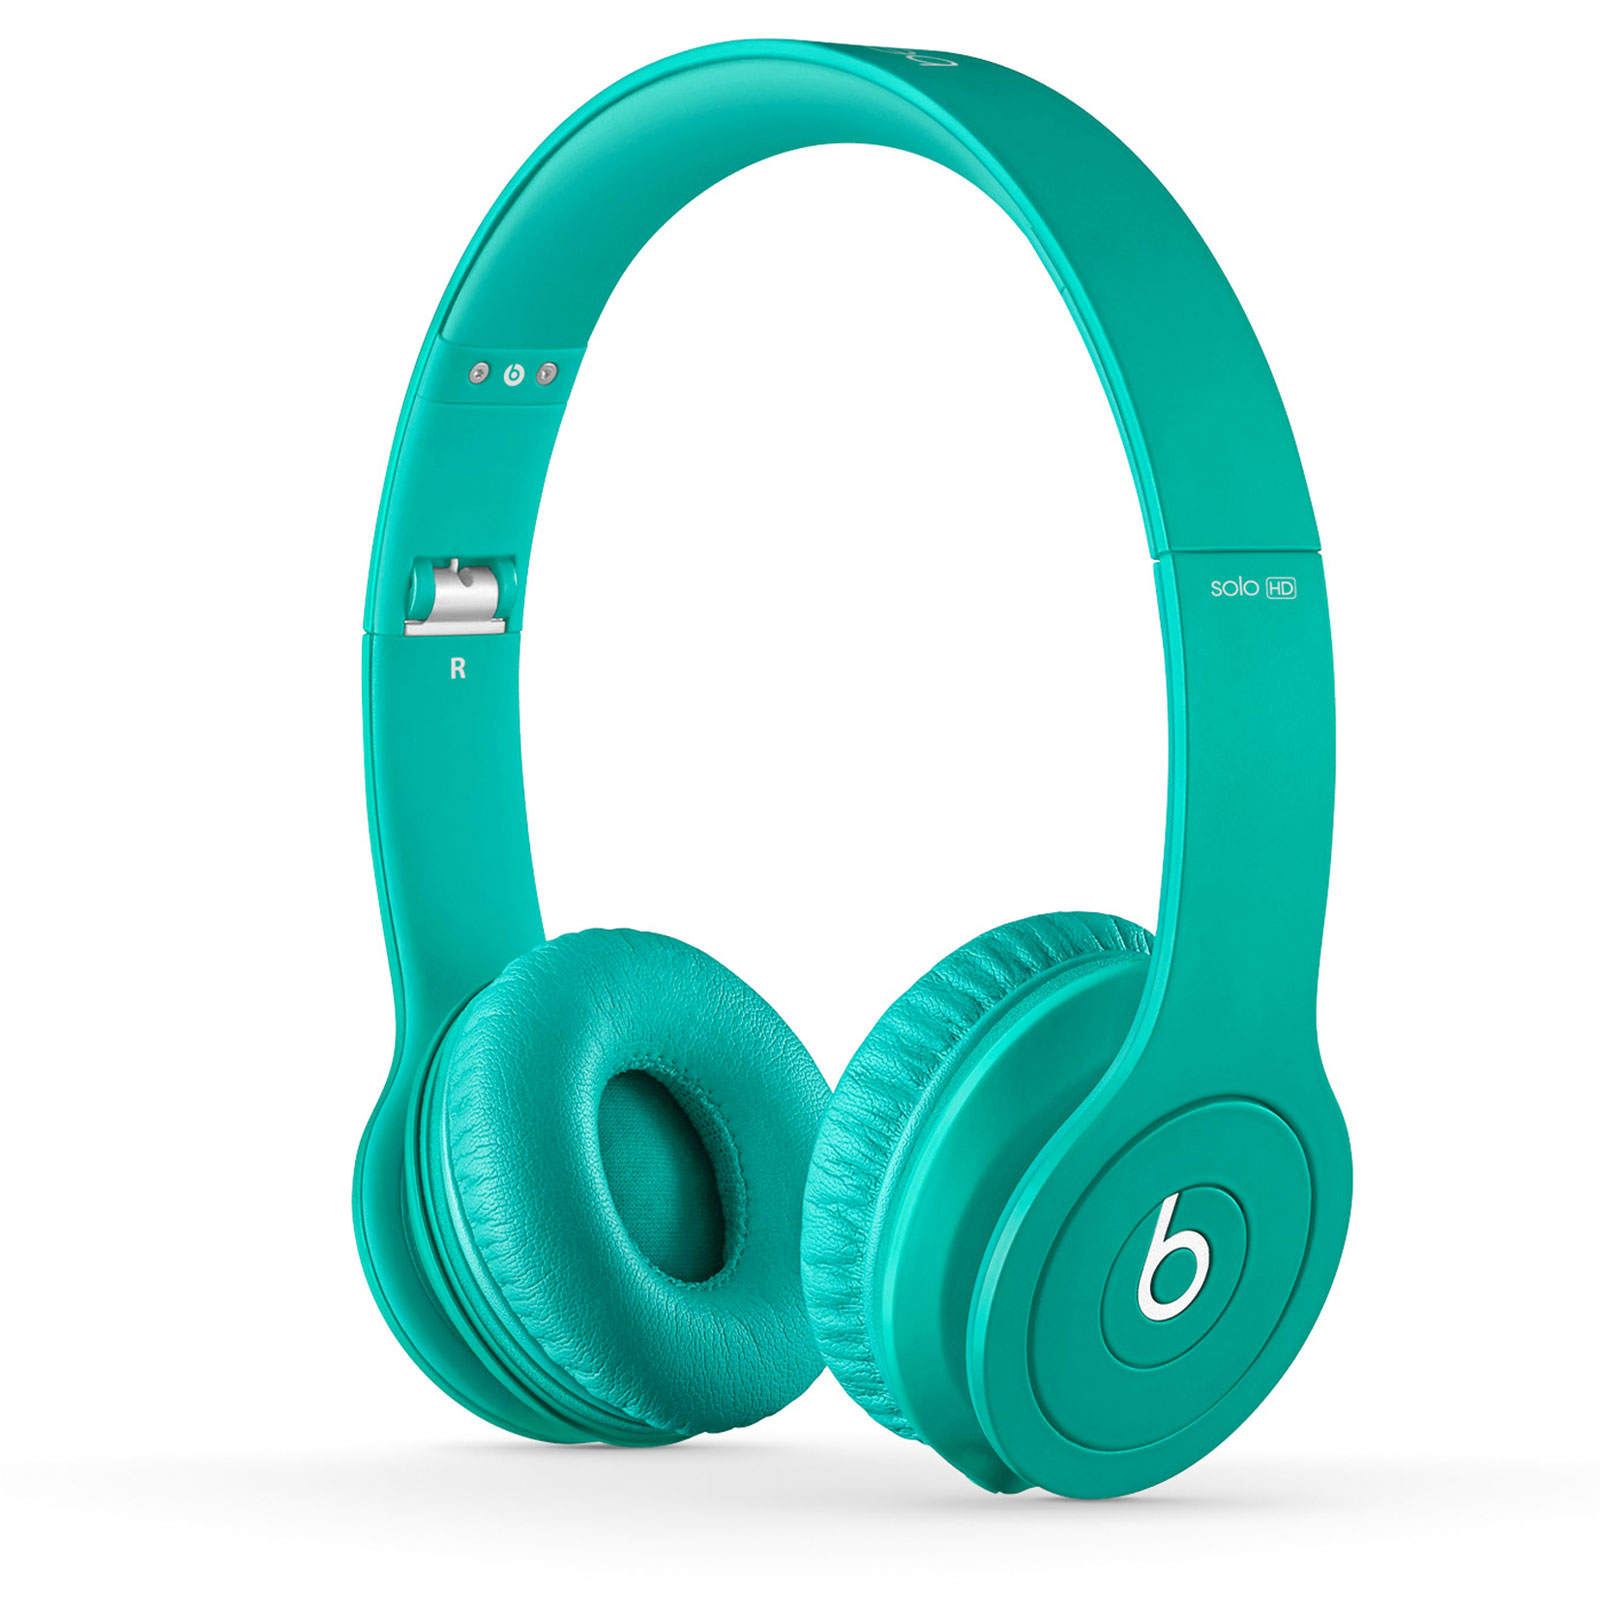 beats solo 2 hd bleu vert casque beats by dr dre sur ldlc. Black Bedroom Furniture Sets. Home Design Ideas